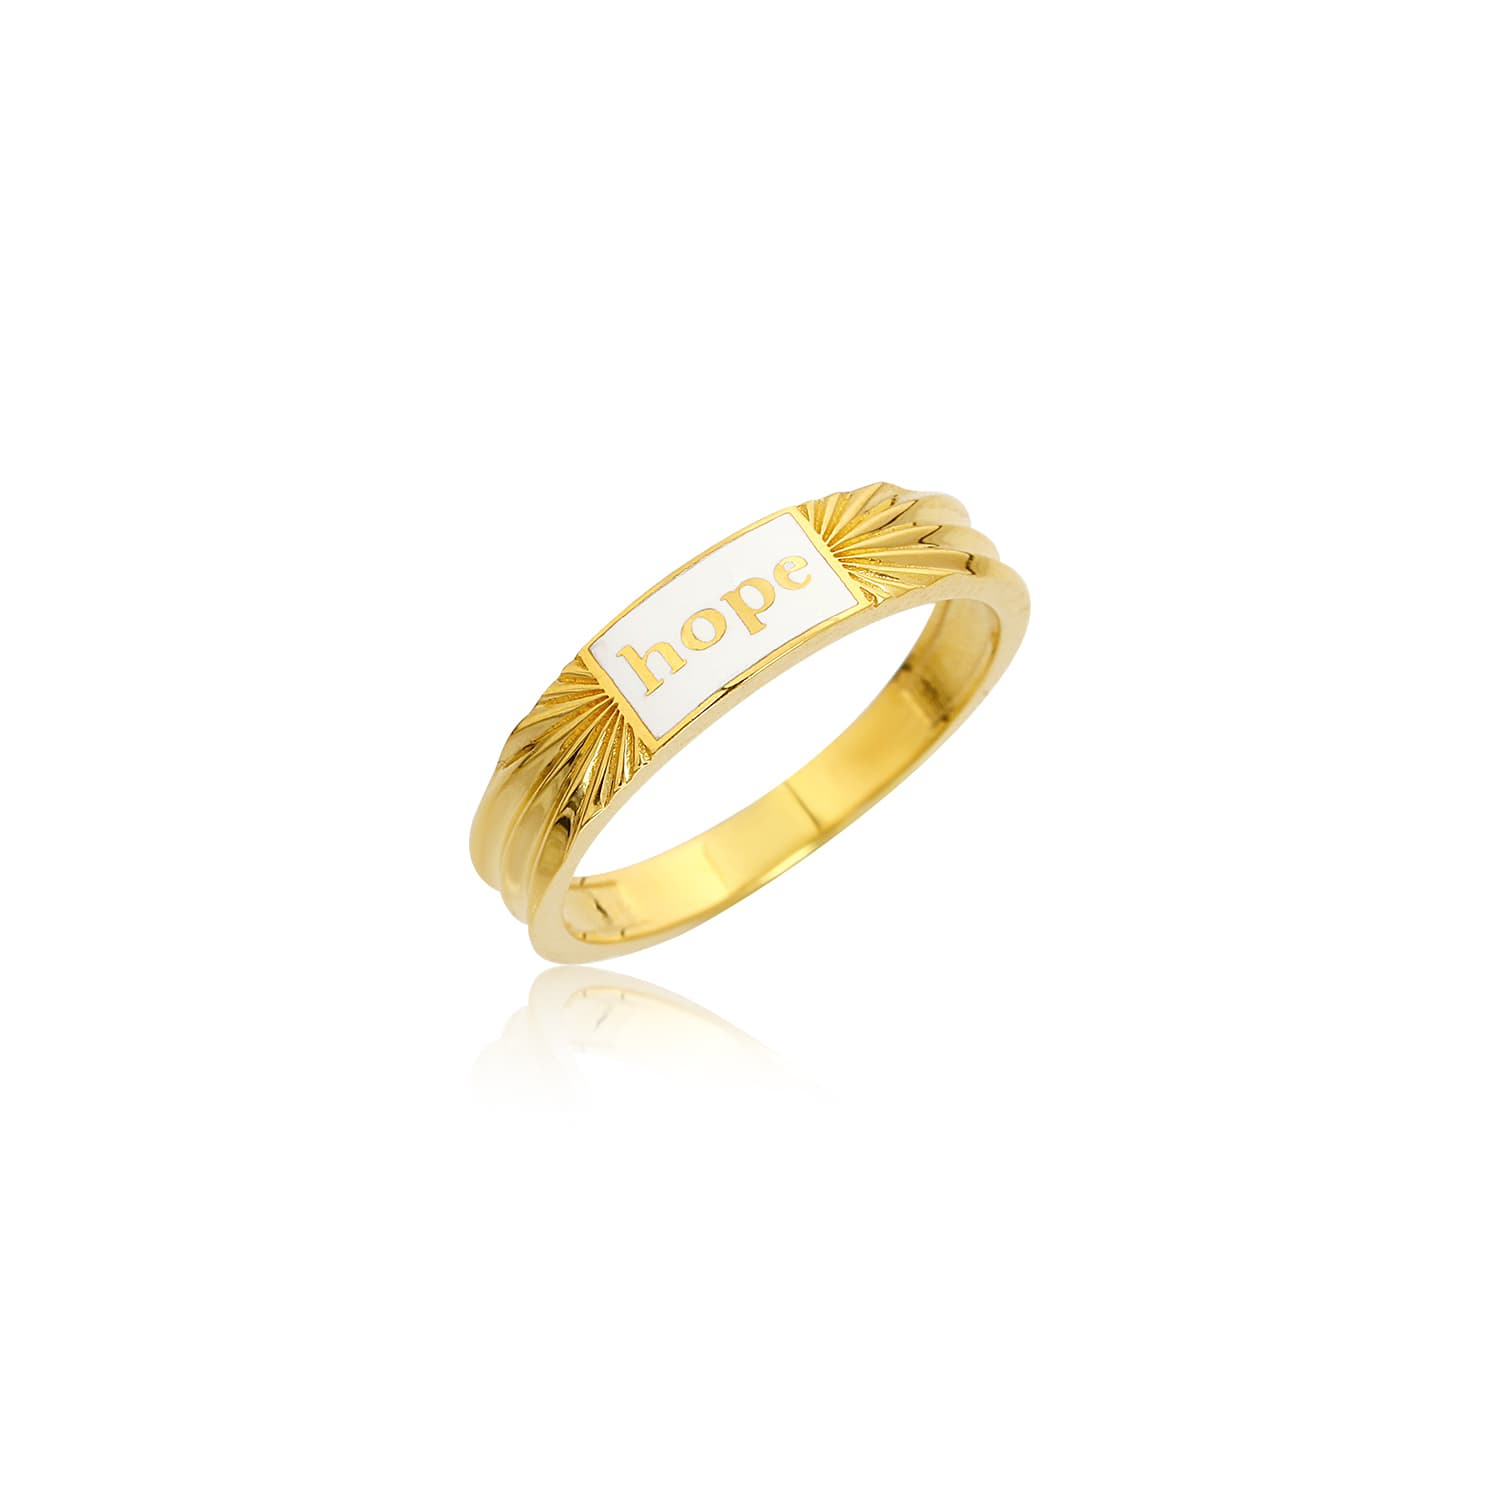 Real gold plated white enamel ring on silver